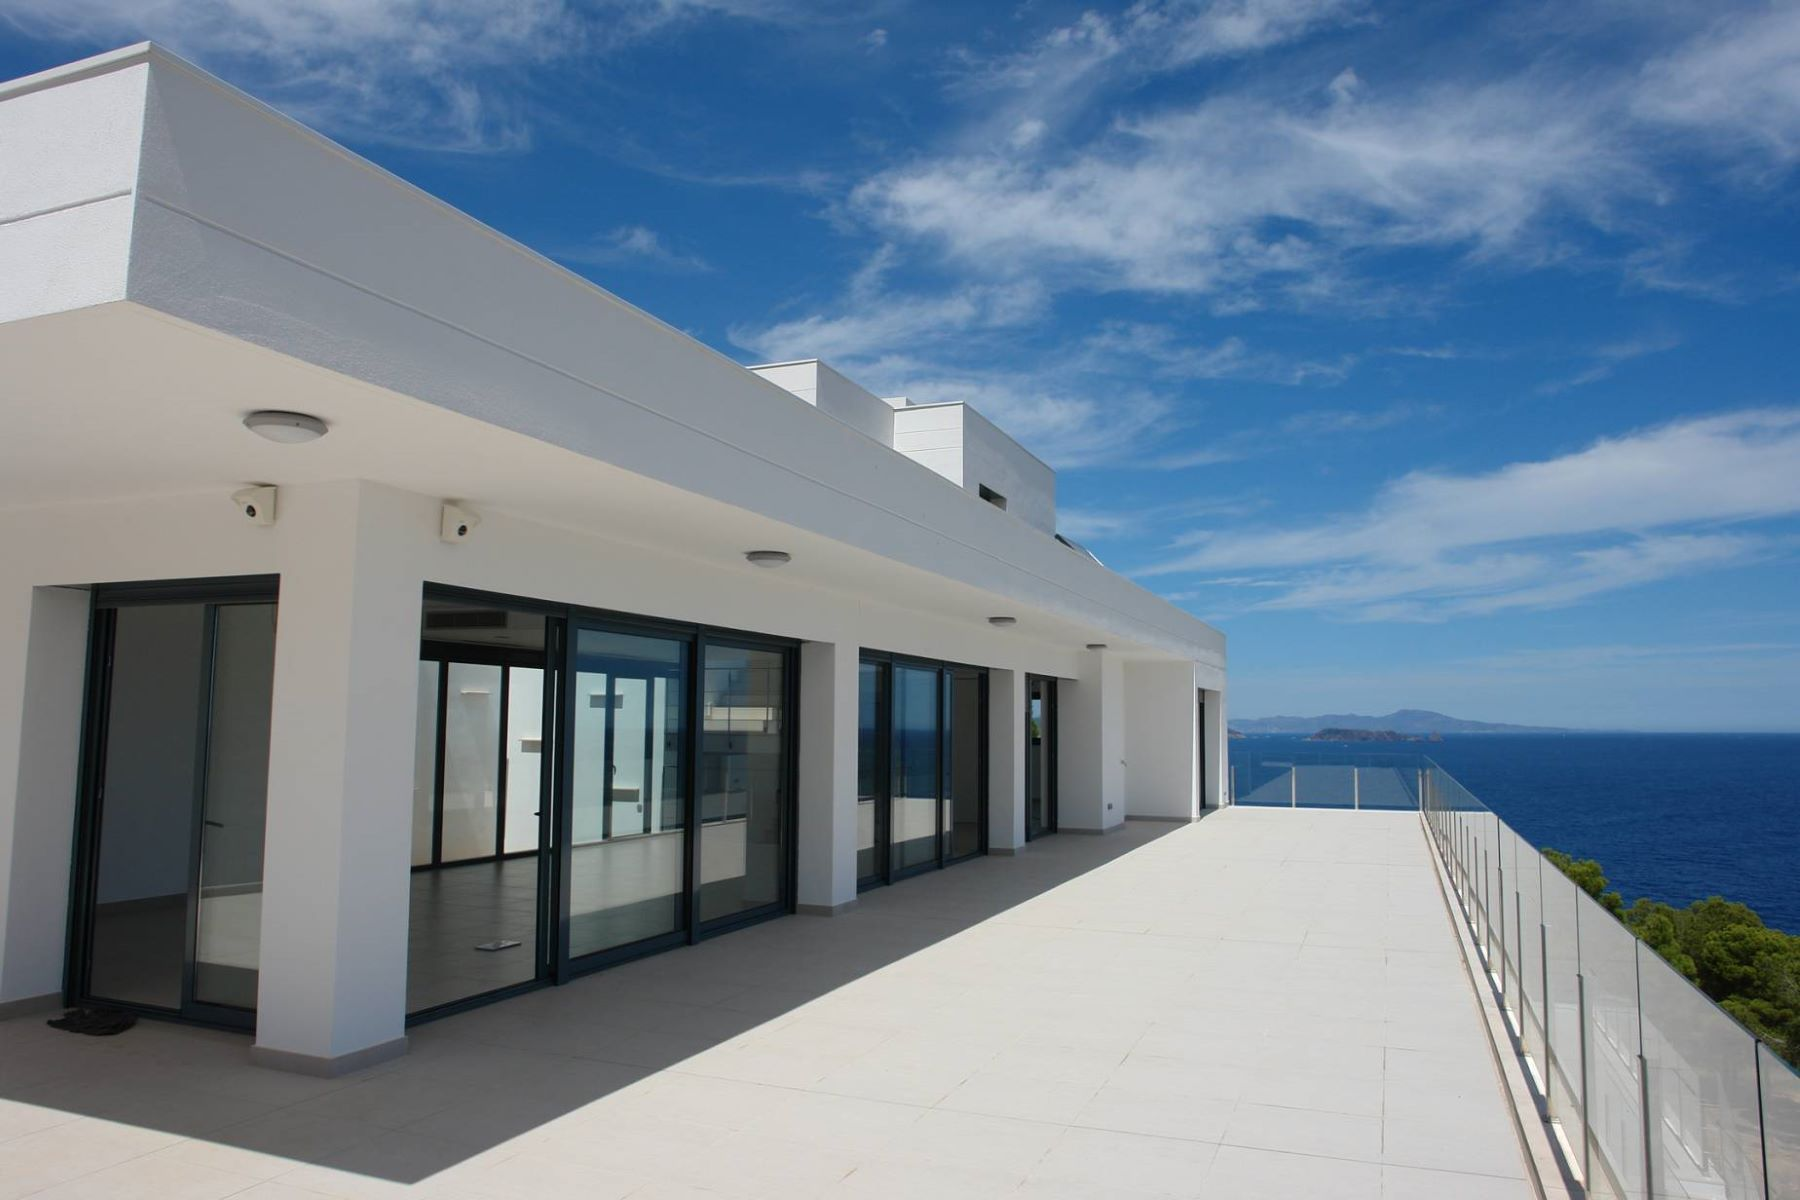 Single Family Home for Sale at Modern style villa in second line with breath-taking sea views Begur, Costa Brava, 17255 Spain